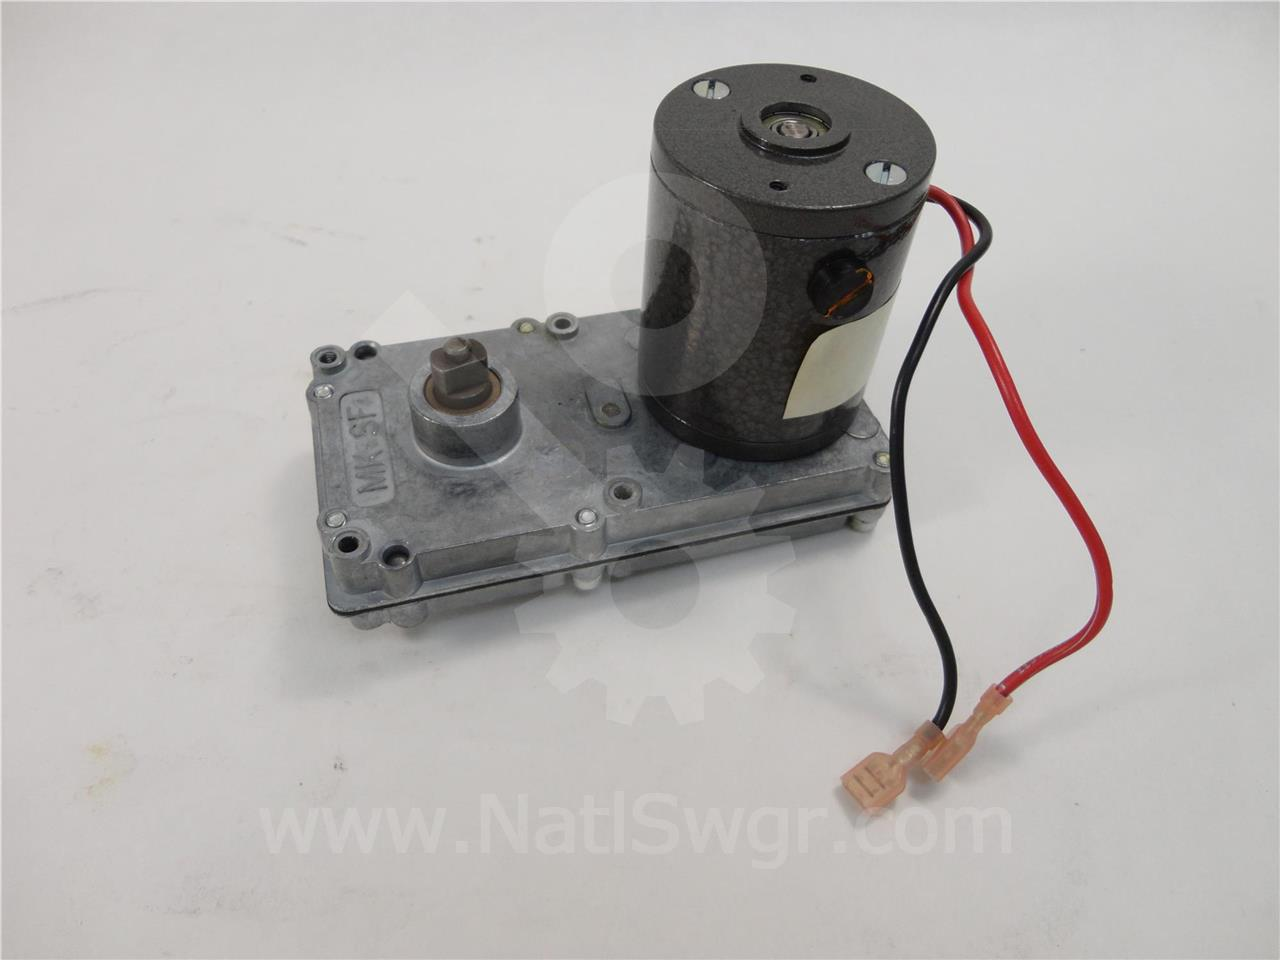 WH 125VDC/120-240VAC MALE DRIVE CHARGE GEAR MOTOR